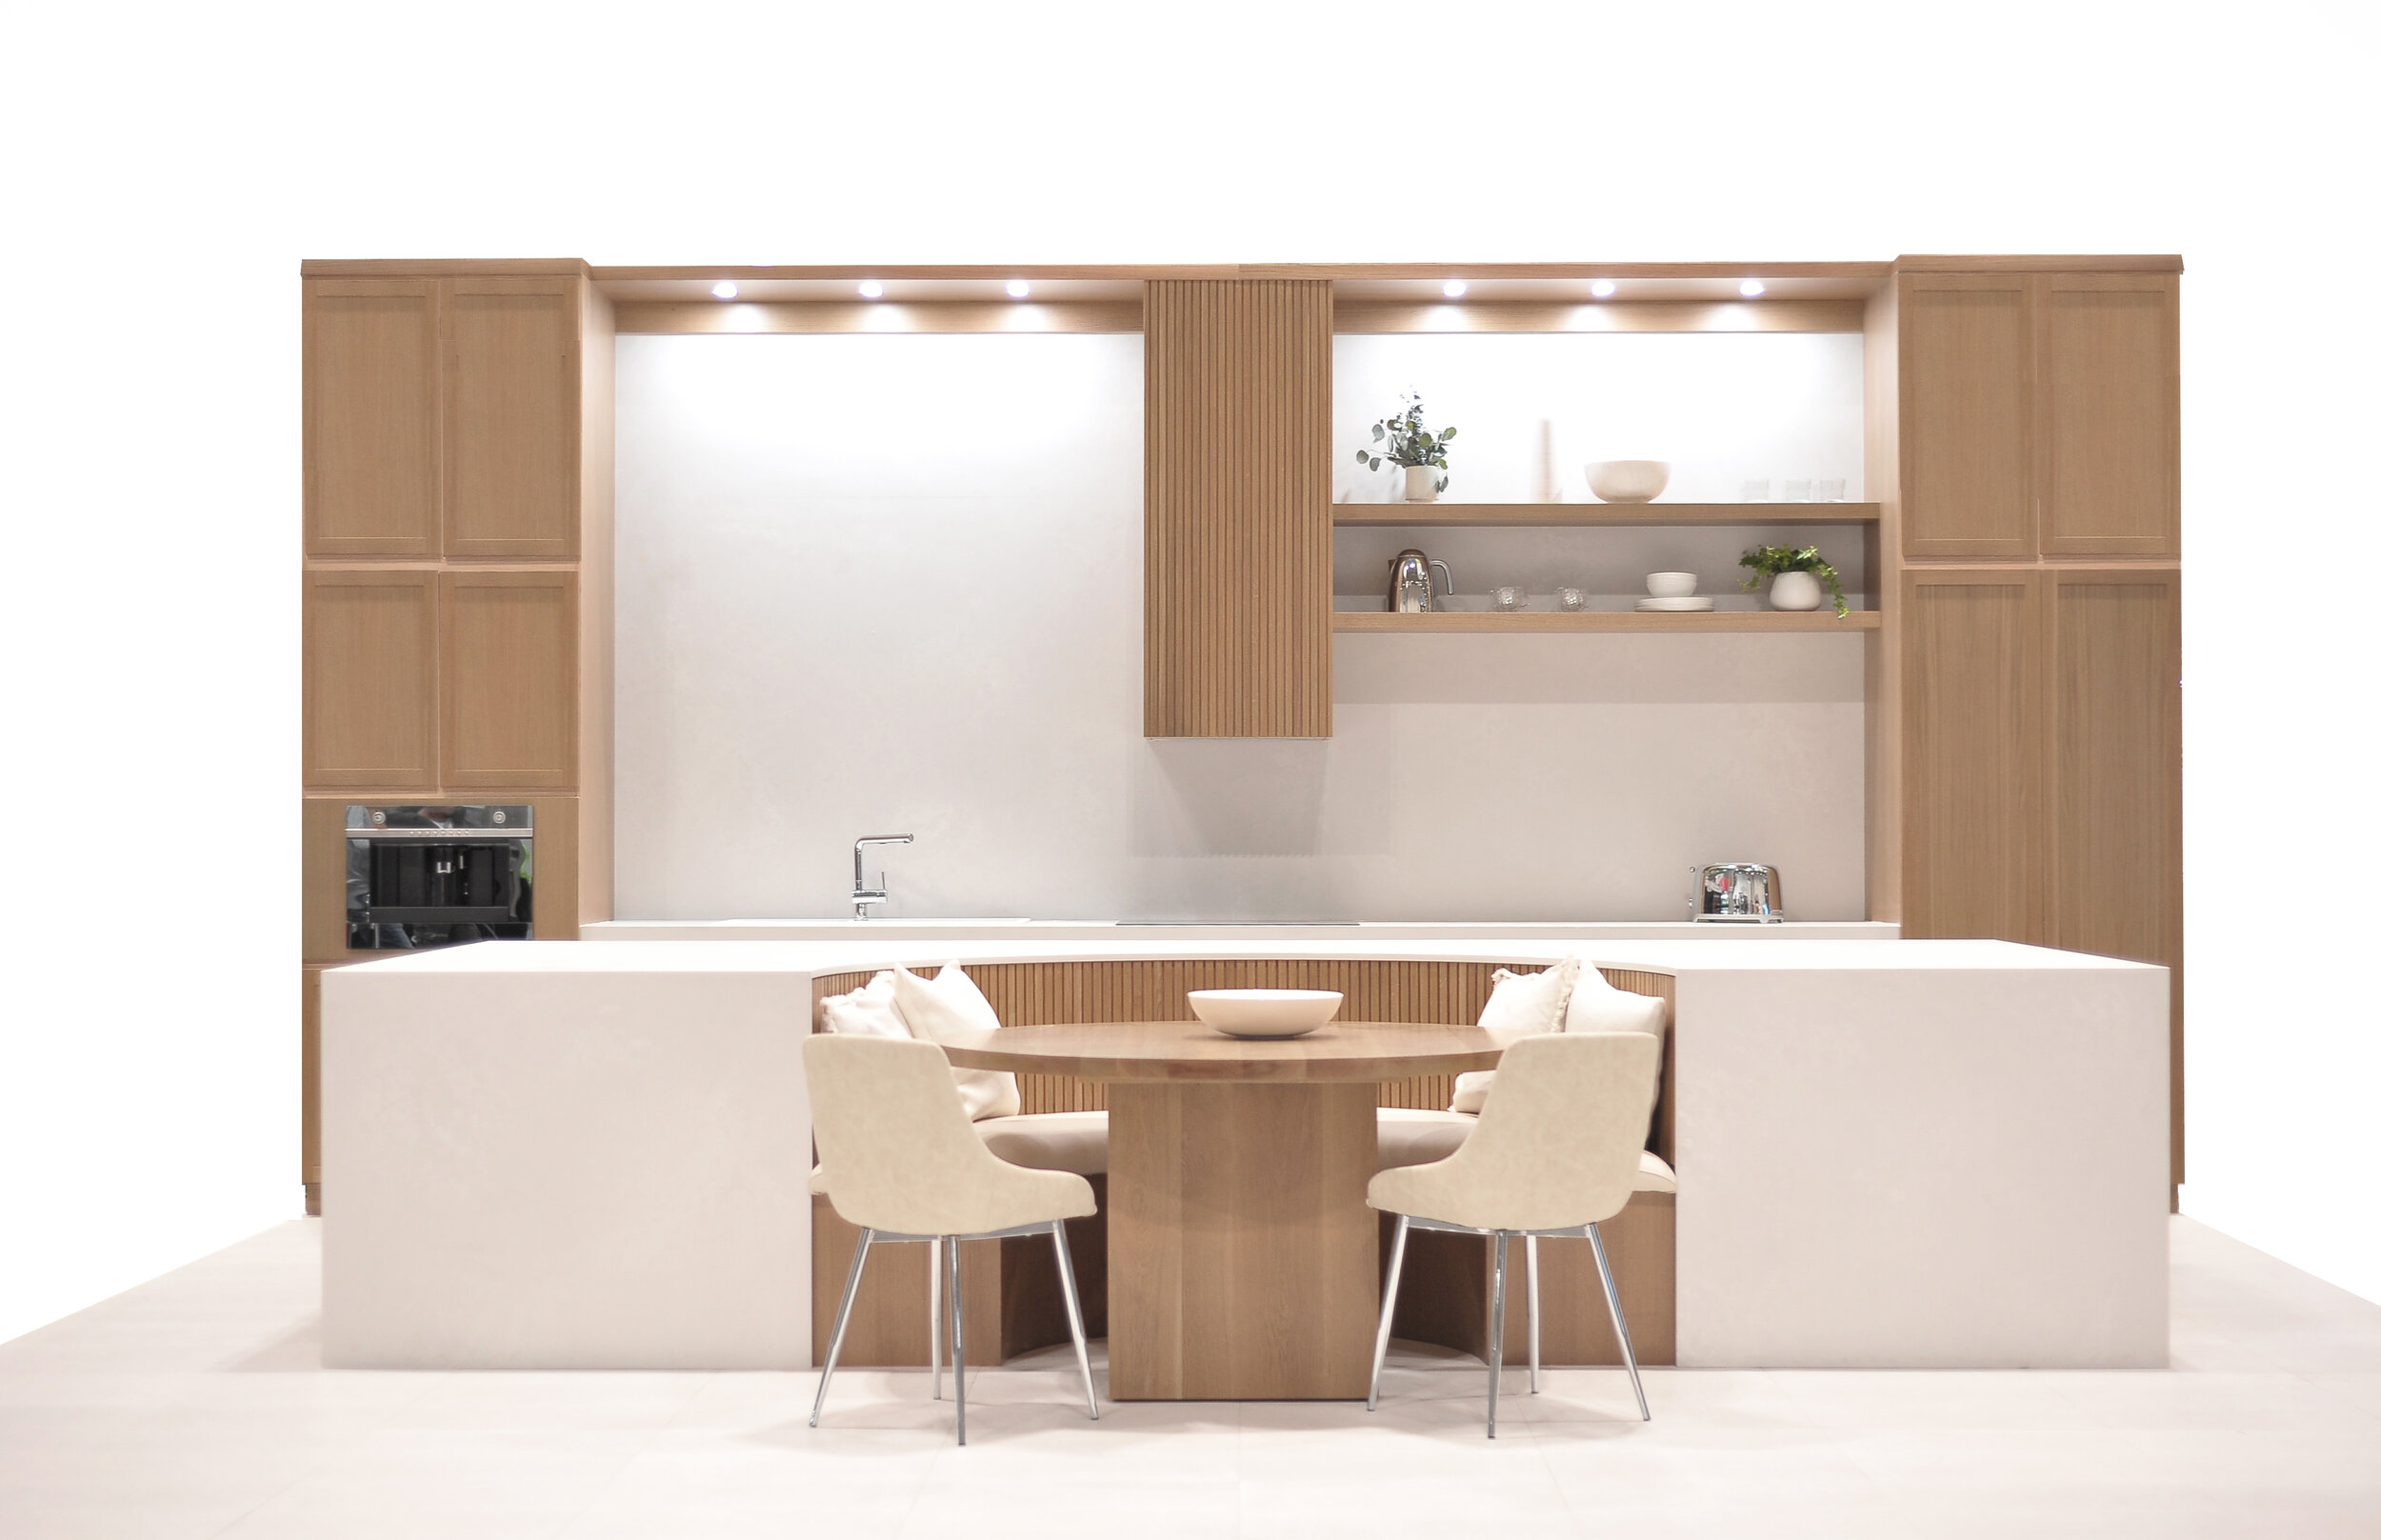 Toronto Kitchen Interior Design Blog Spaces By Jacflash